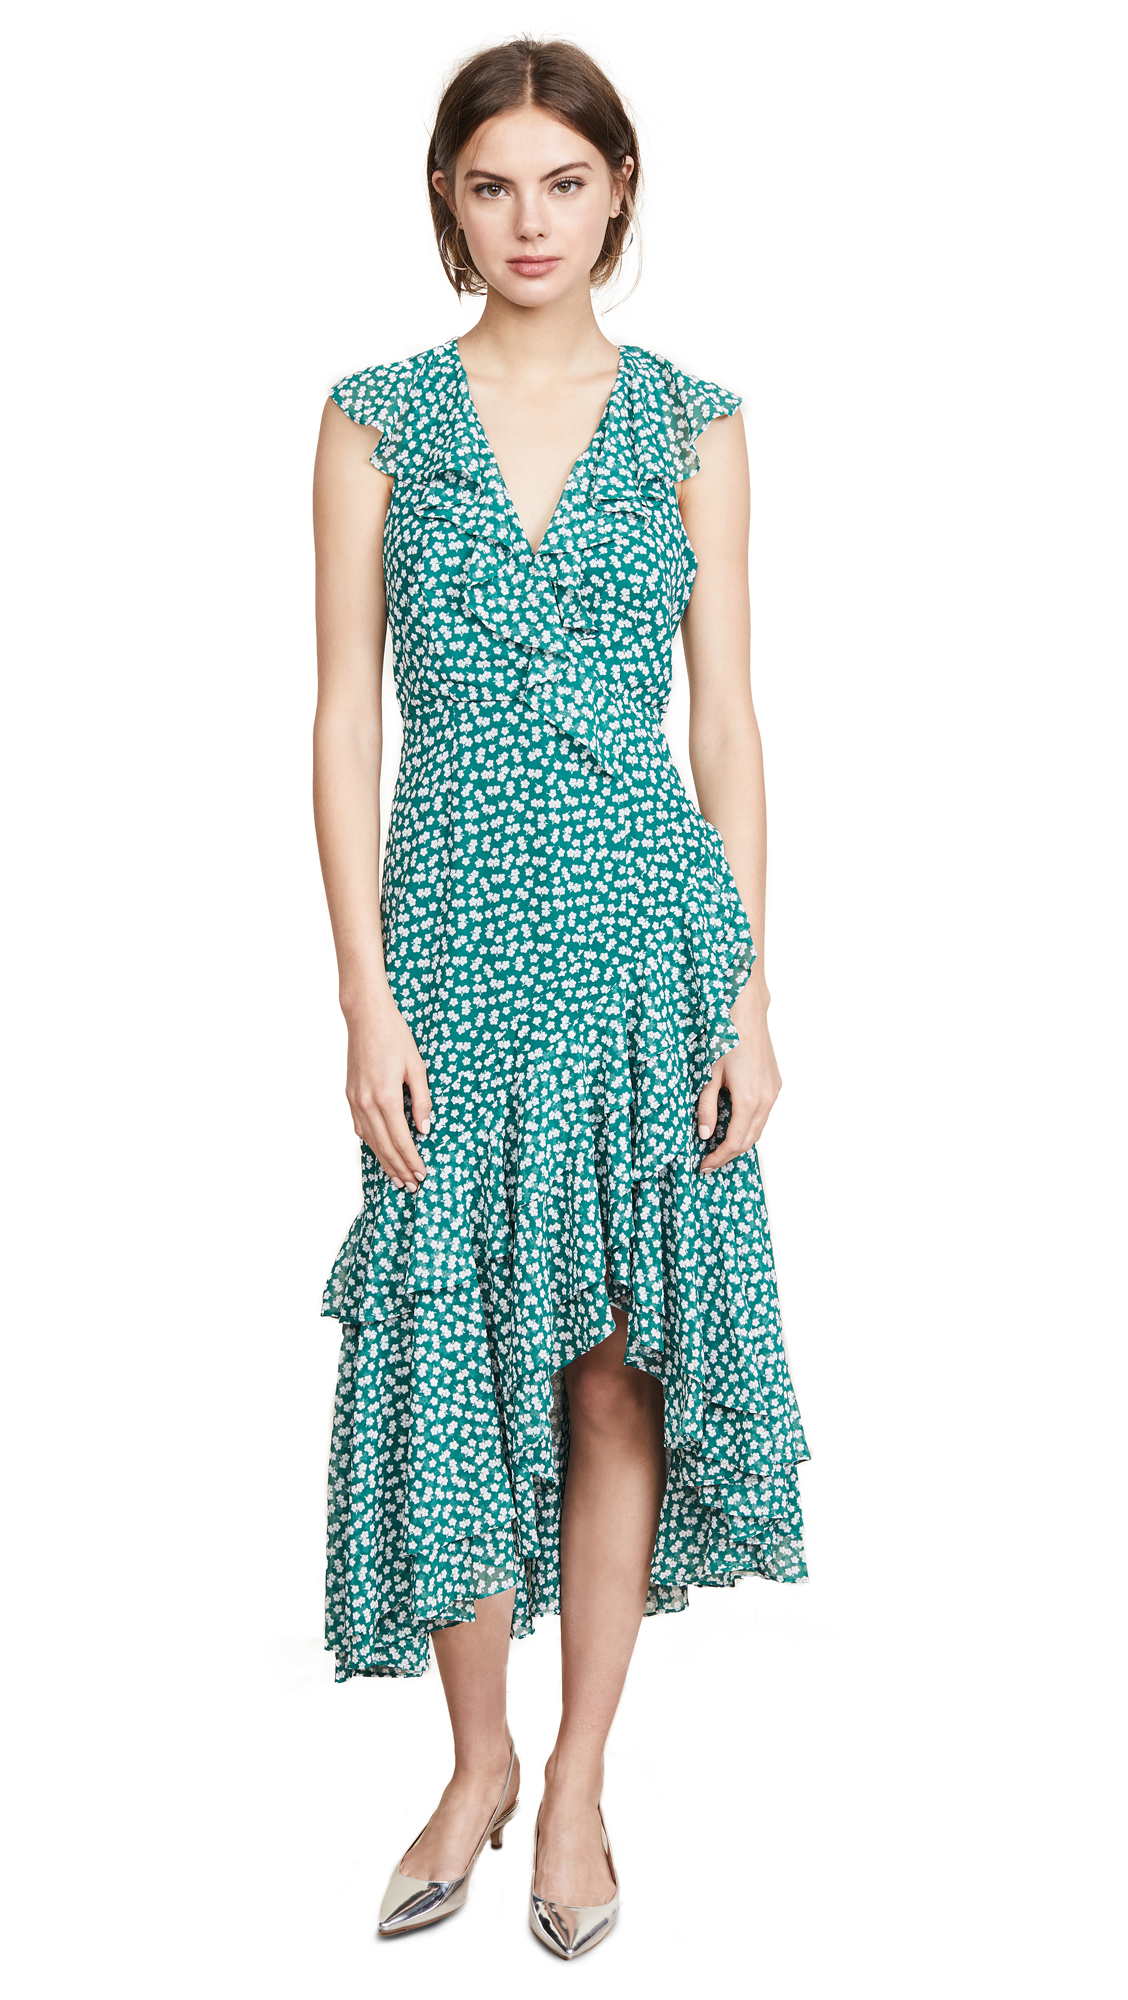 Be About You Ruffle Midi Dress, Green Daisy